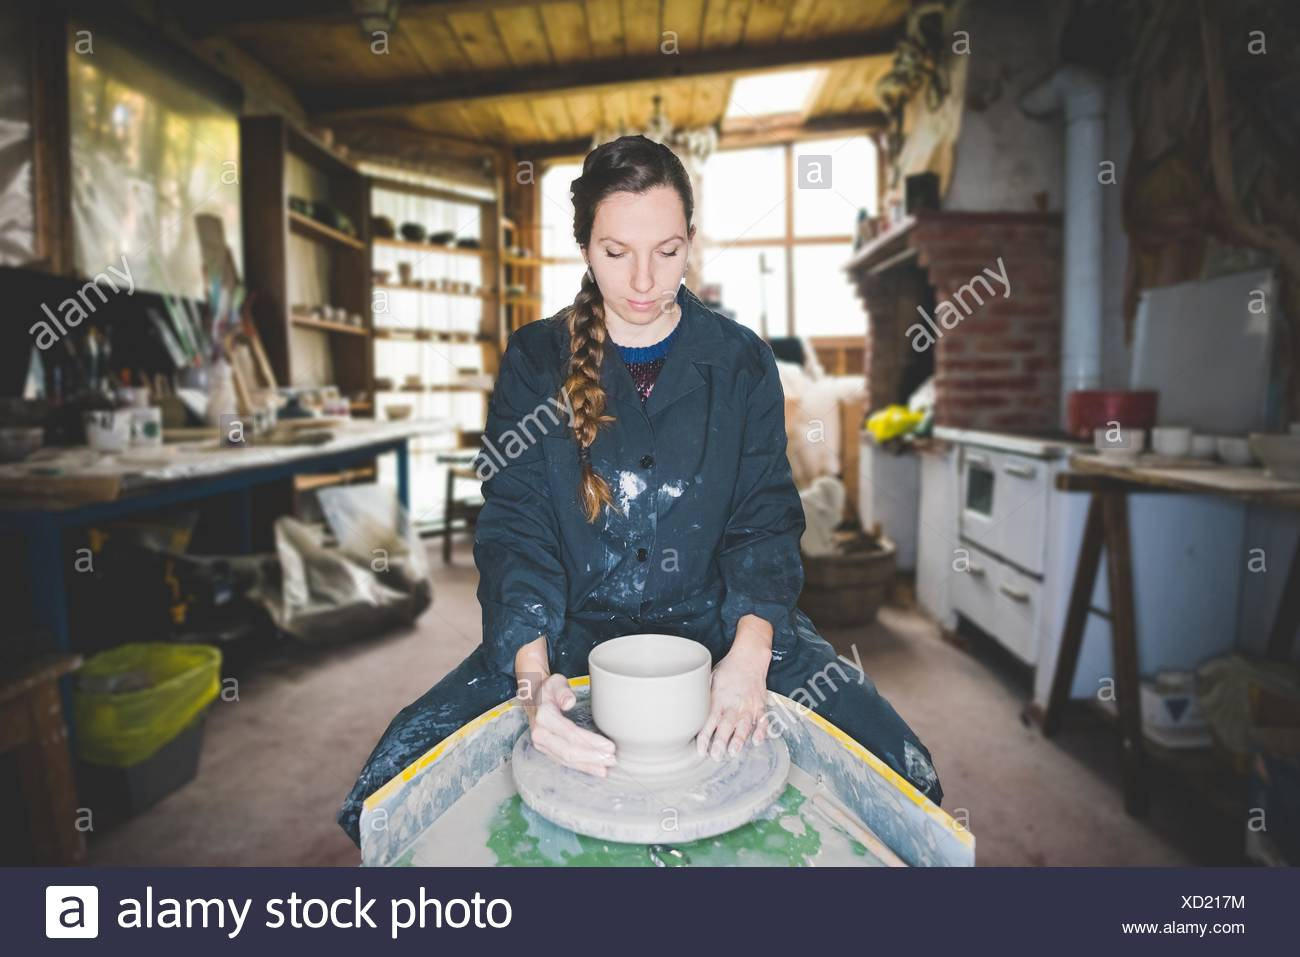 Front view of young woman in workshop sitting at pottery wheel making clay pot, looking down - Stock Image